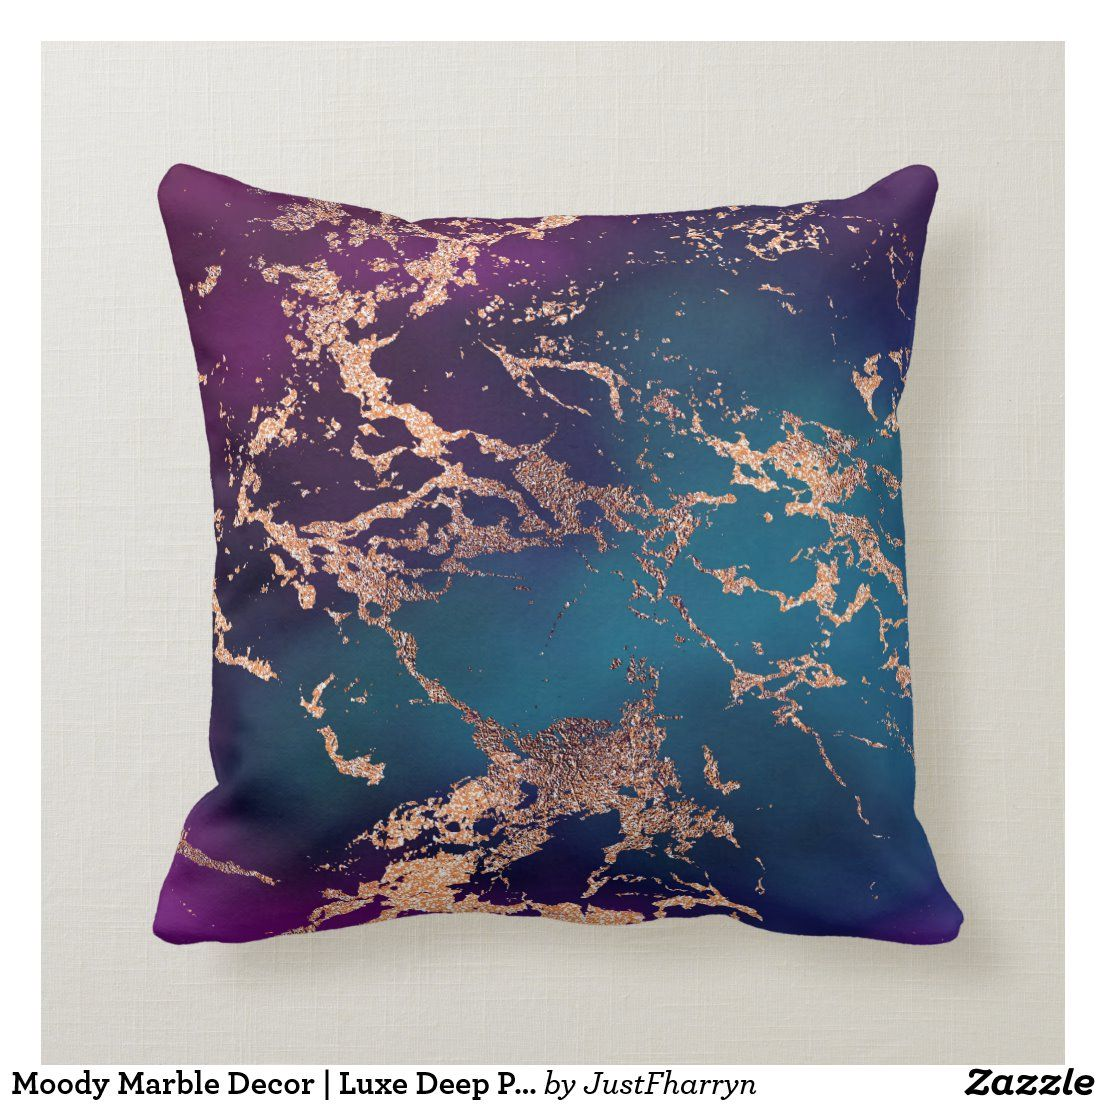 Moody Marble Decor Luxe Deep Purple Teal Gold Throw Pillow